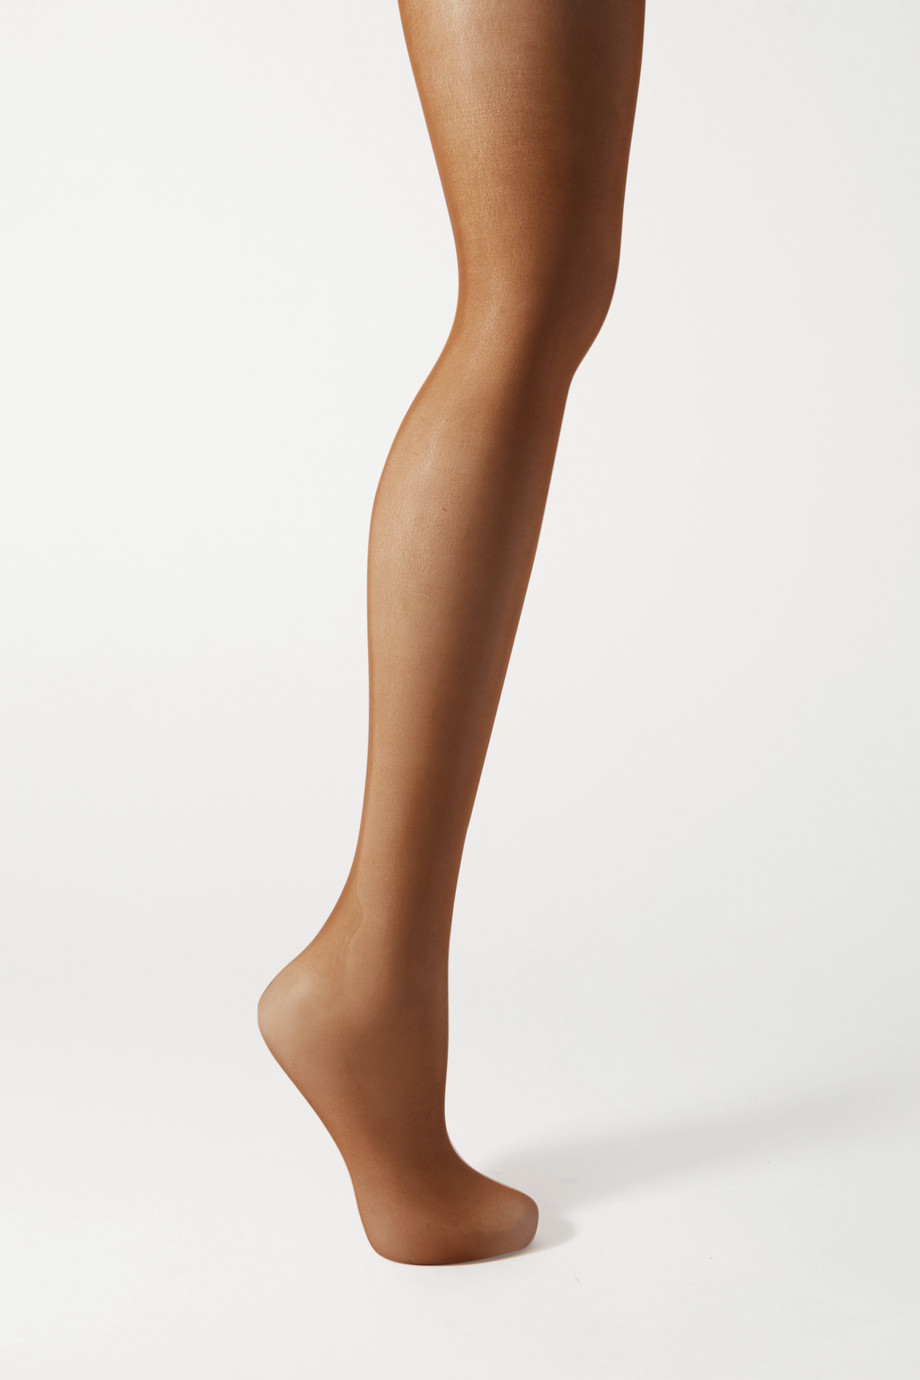 HEIST The Nude High 050 tights